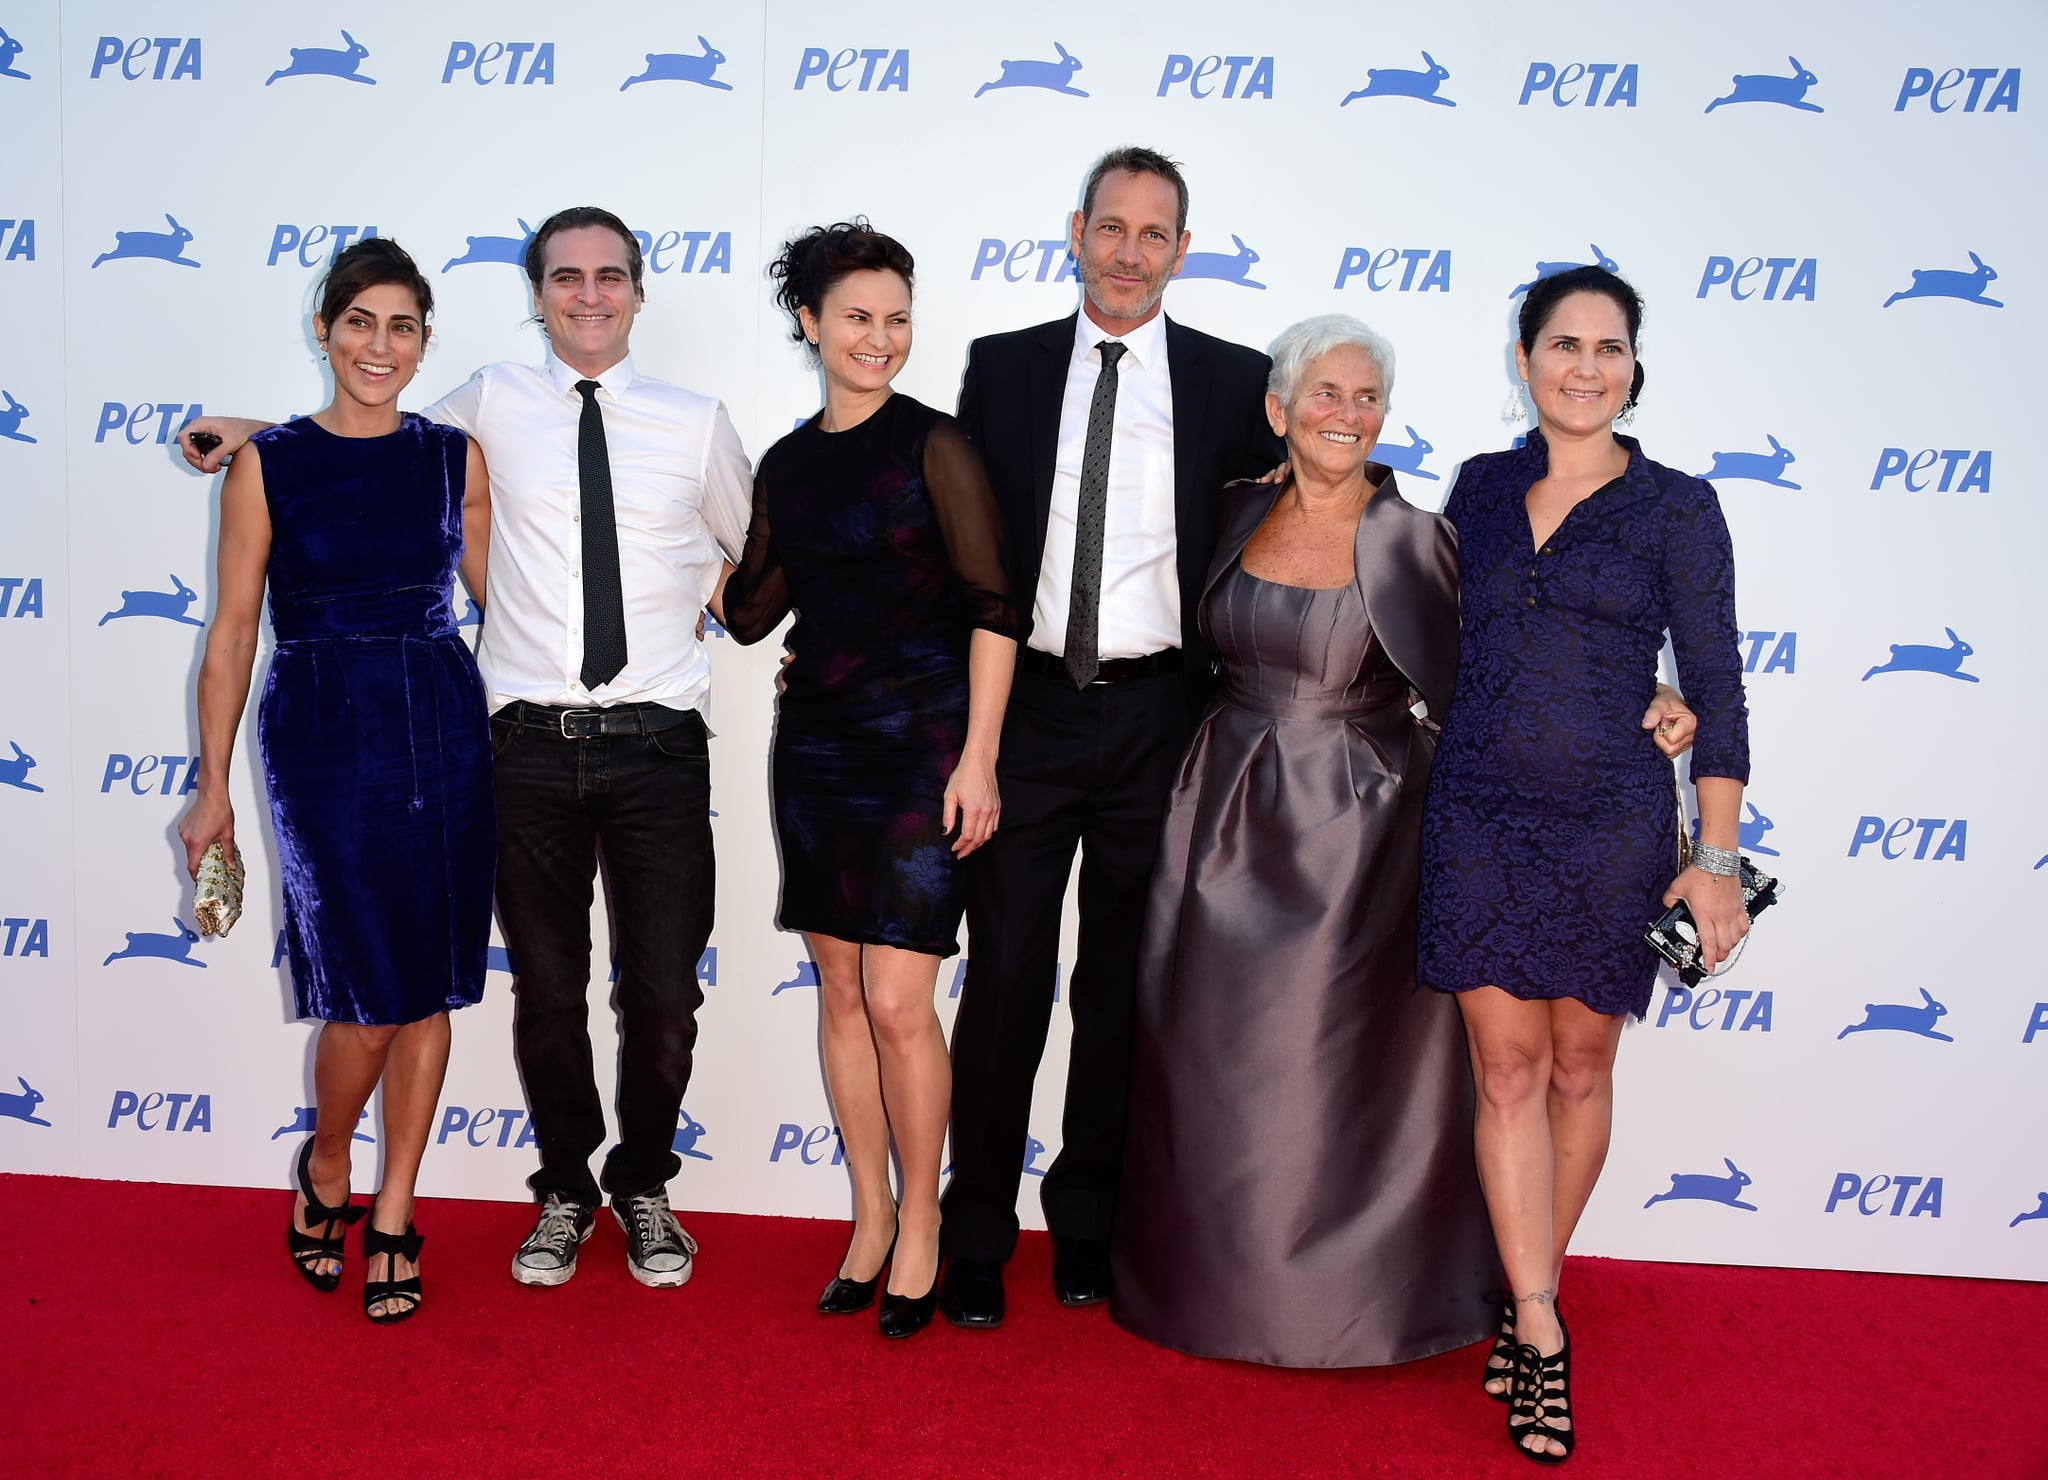 Joaquin Phoenix's family include mother Heart and siblings Rain, Liberty, Jeffery and Summer. Pictured alongside Phoenix's mother is Heart's husband Jeffrey Weisberg